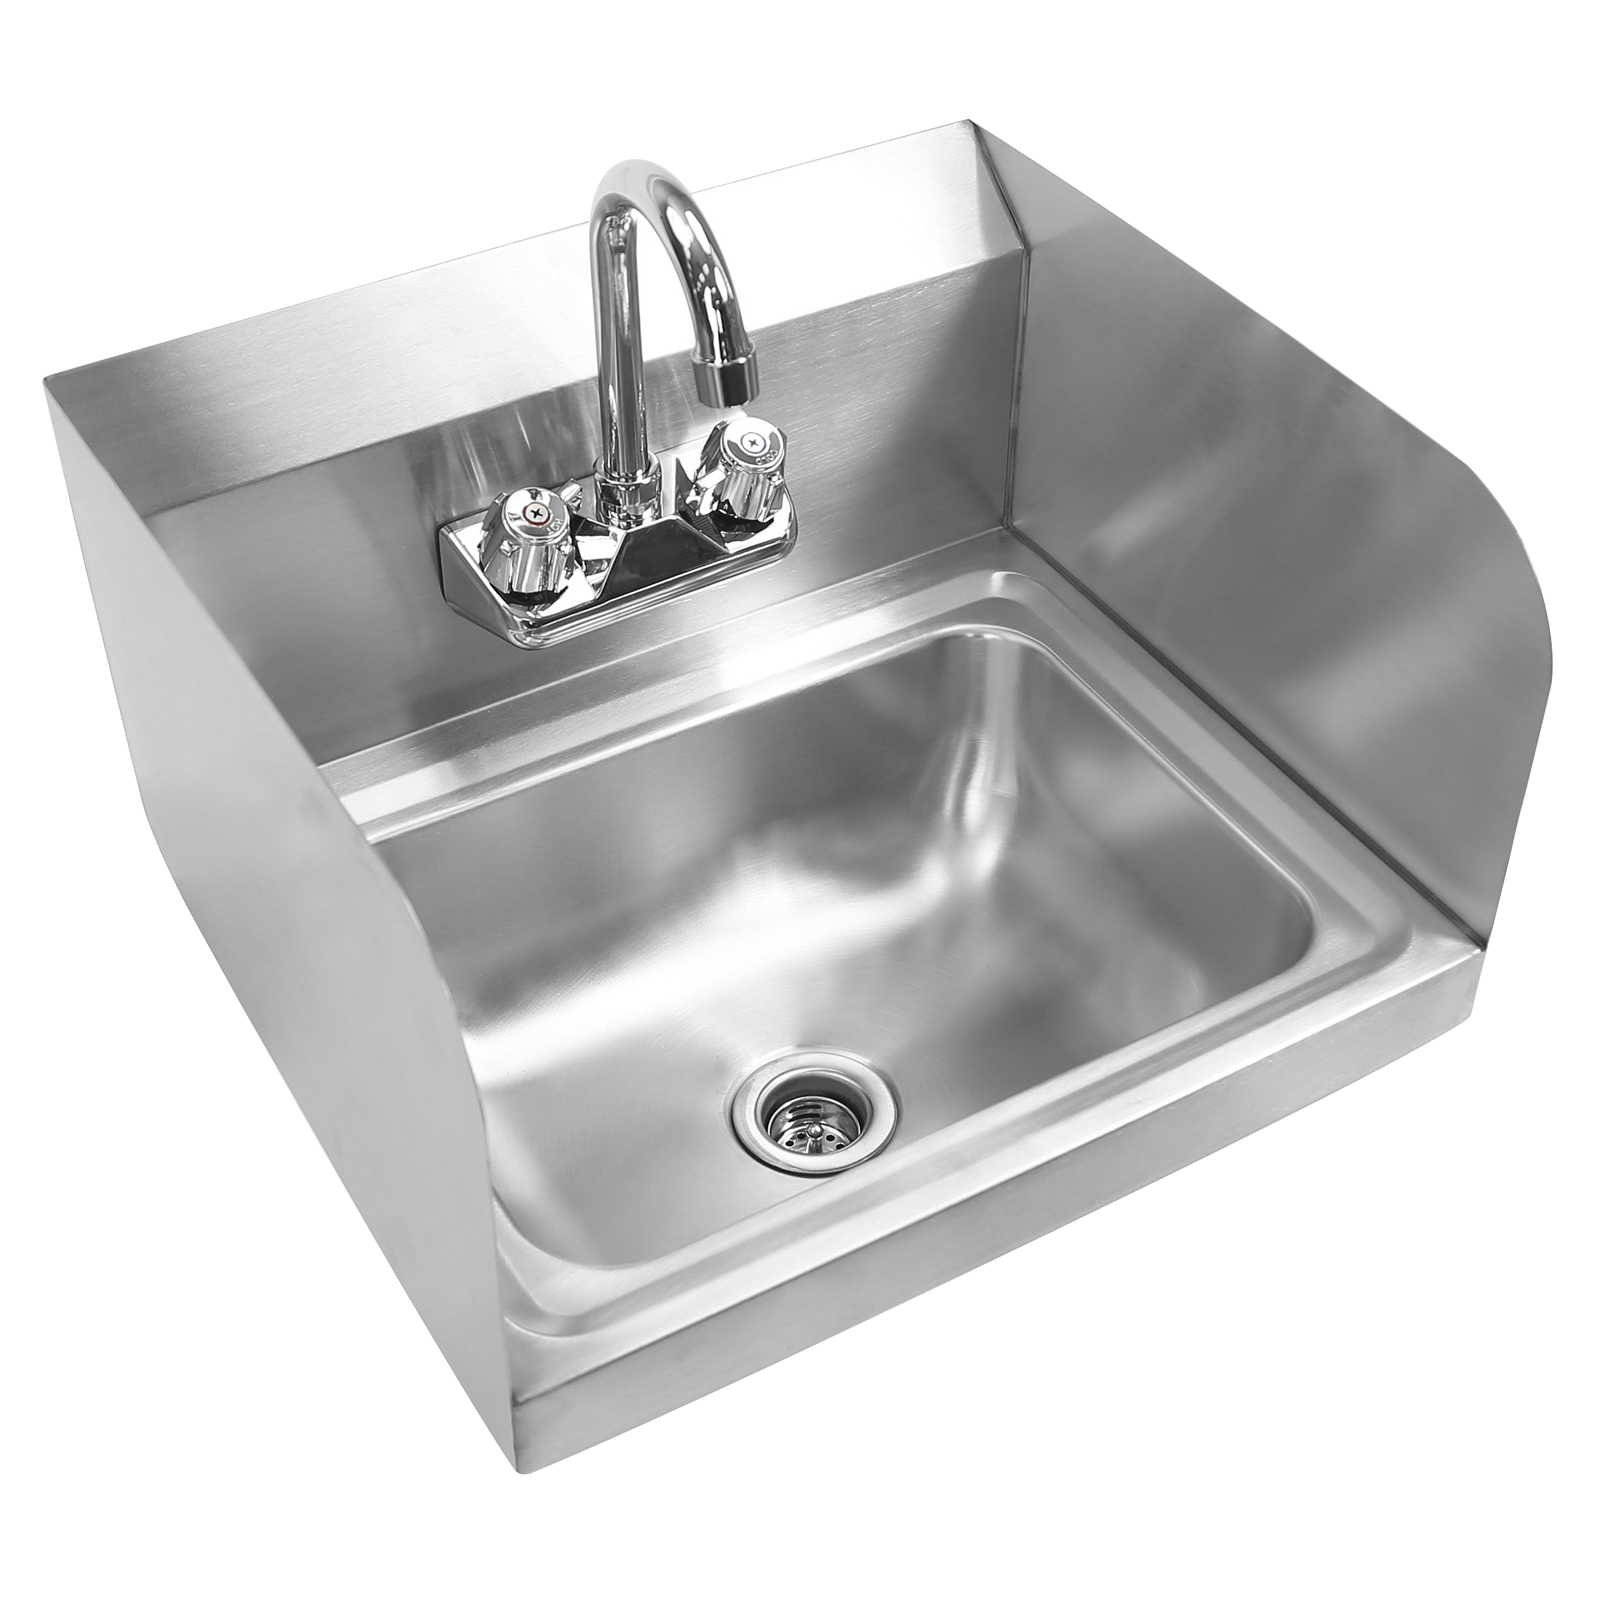 Gridmann Commercial NSF Stainless Steel Sink with Faucet & Sidesplashes - Wall Mount Hand Washing Basin by Gridmann